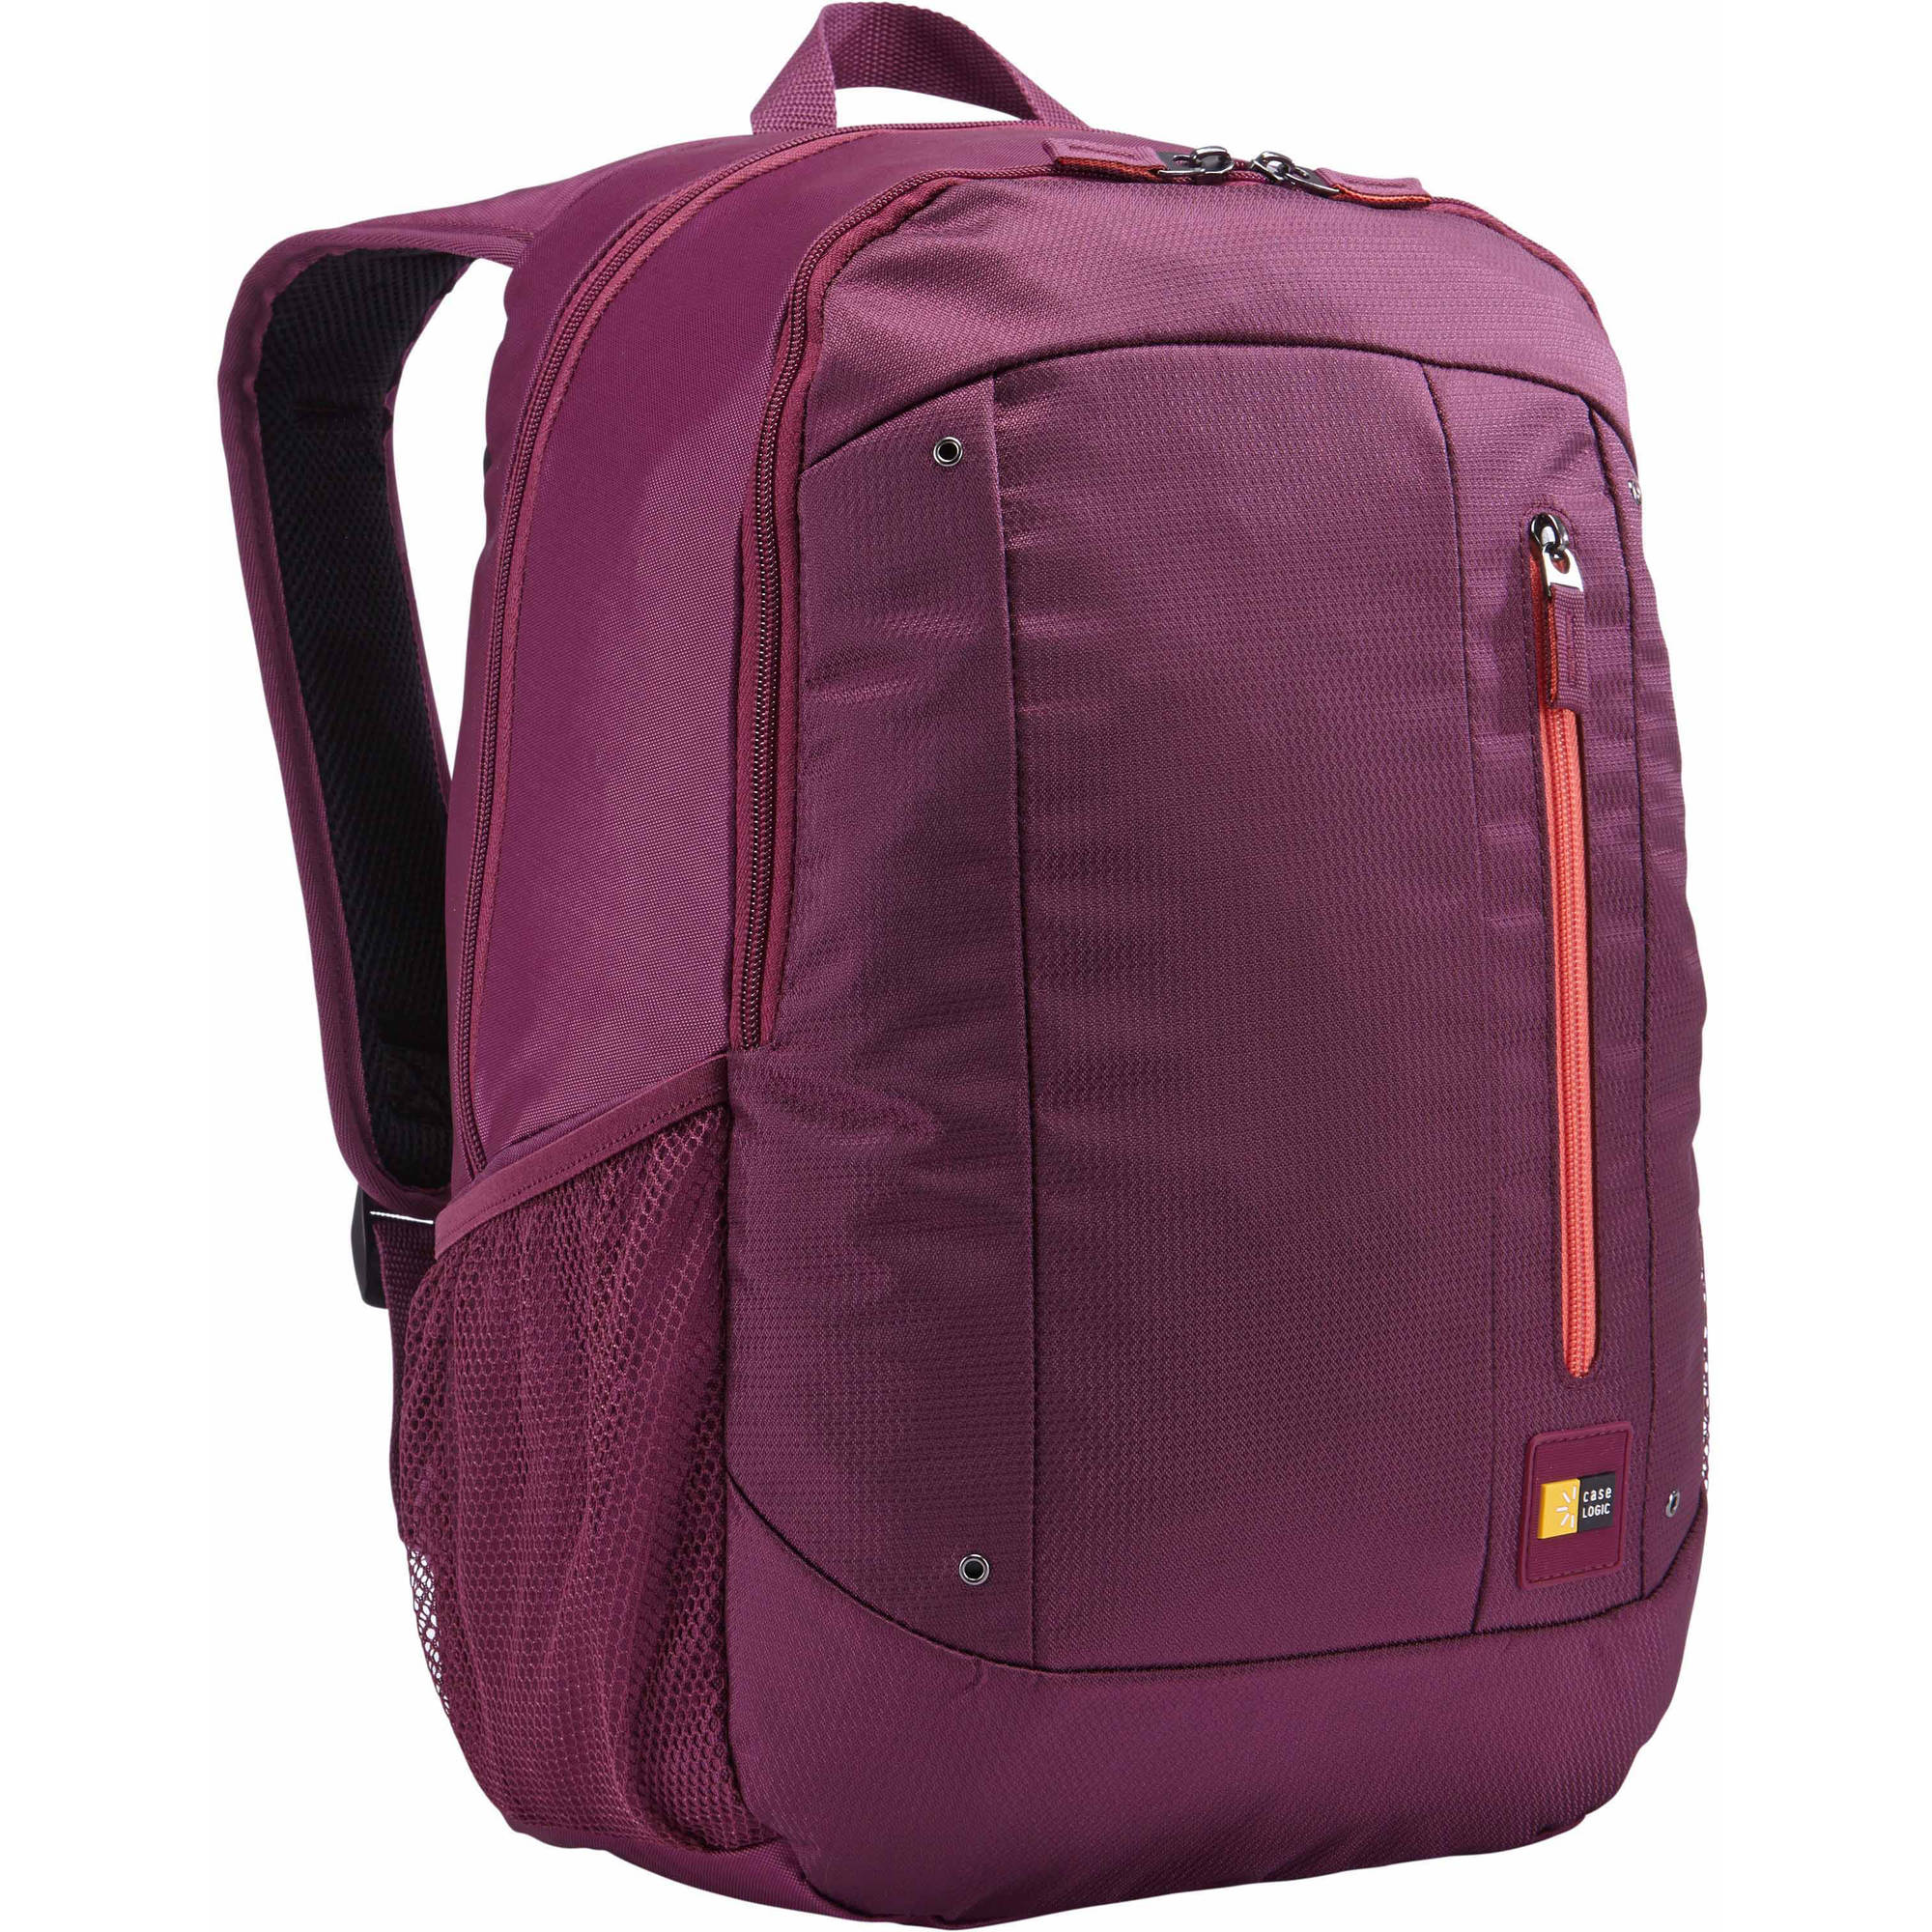 df8f9a0dda0 Case Logic WMBP-115 Jaunt Laptop and Tablet Backpack with Adjustable  Shoulder Straps